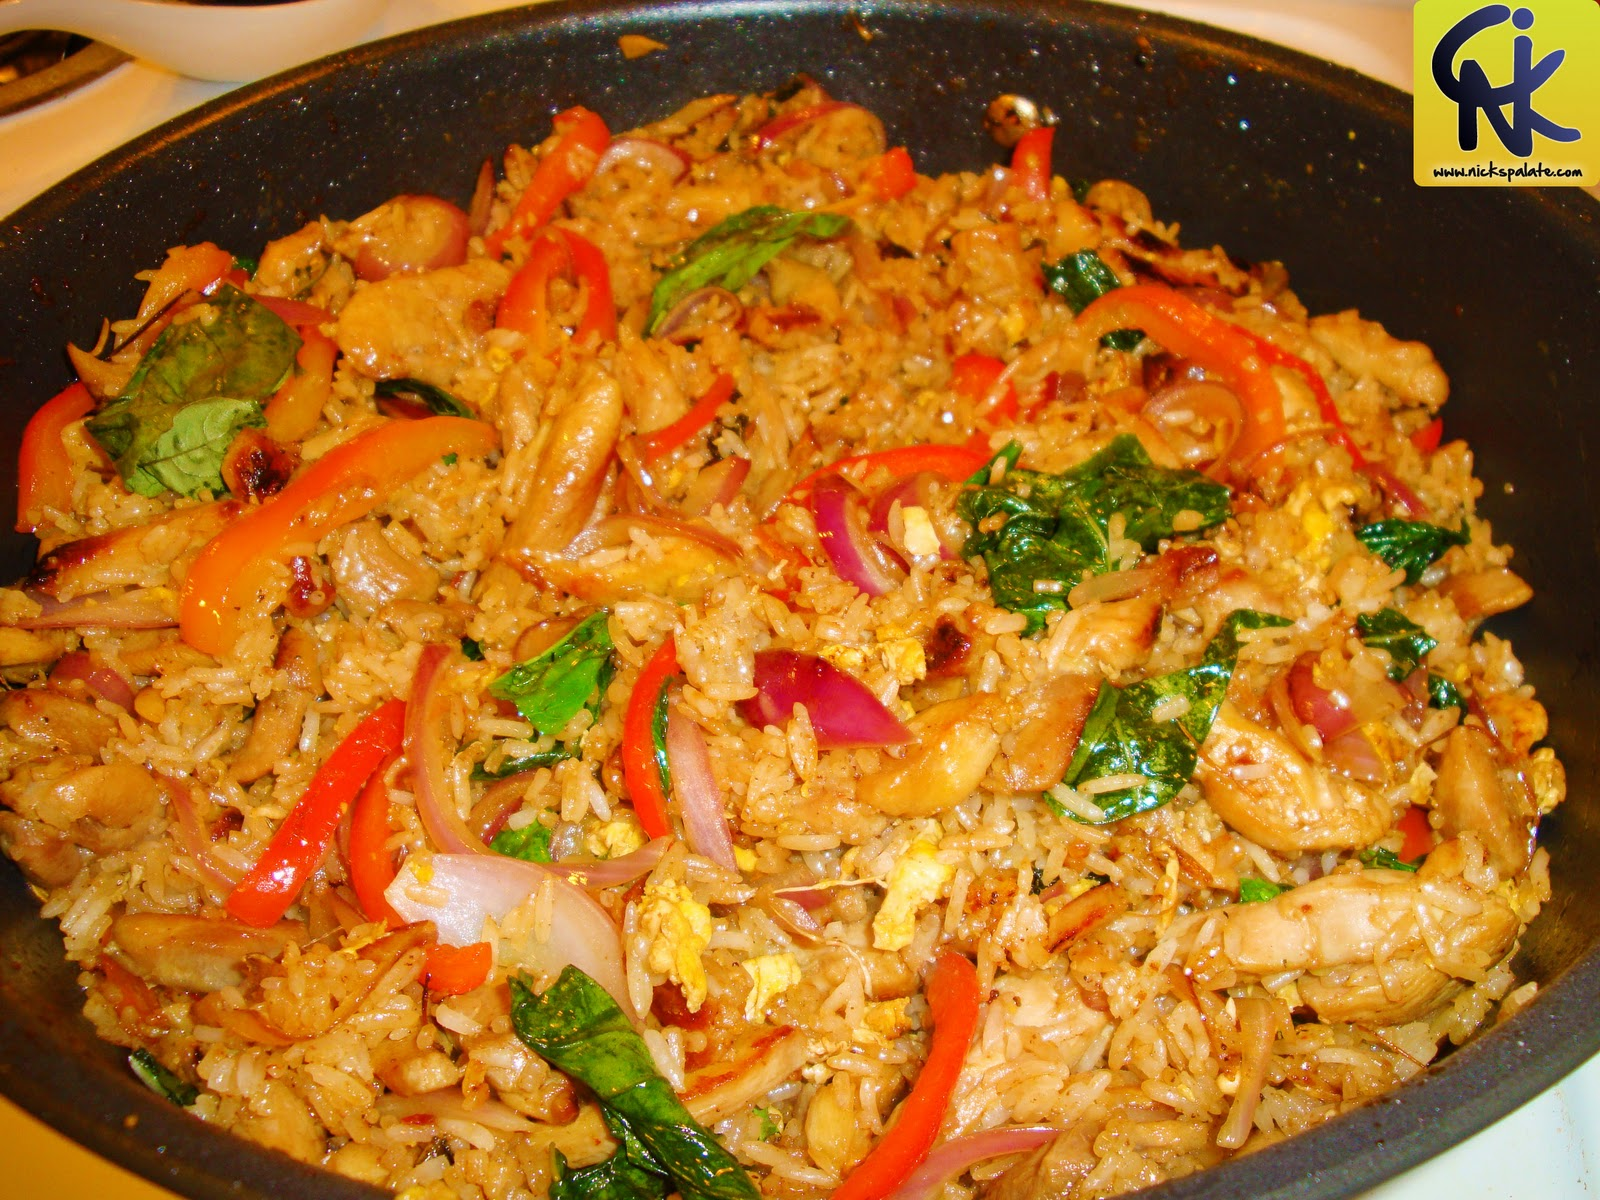 Thai fried rice nick 39 s palate for Fish and rice recipes